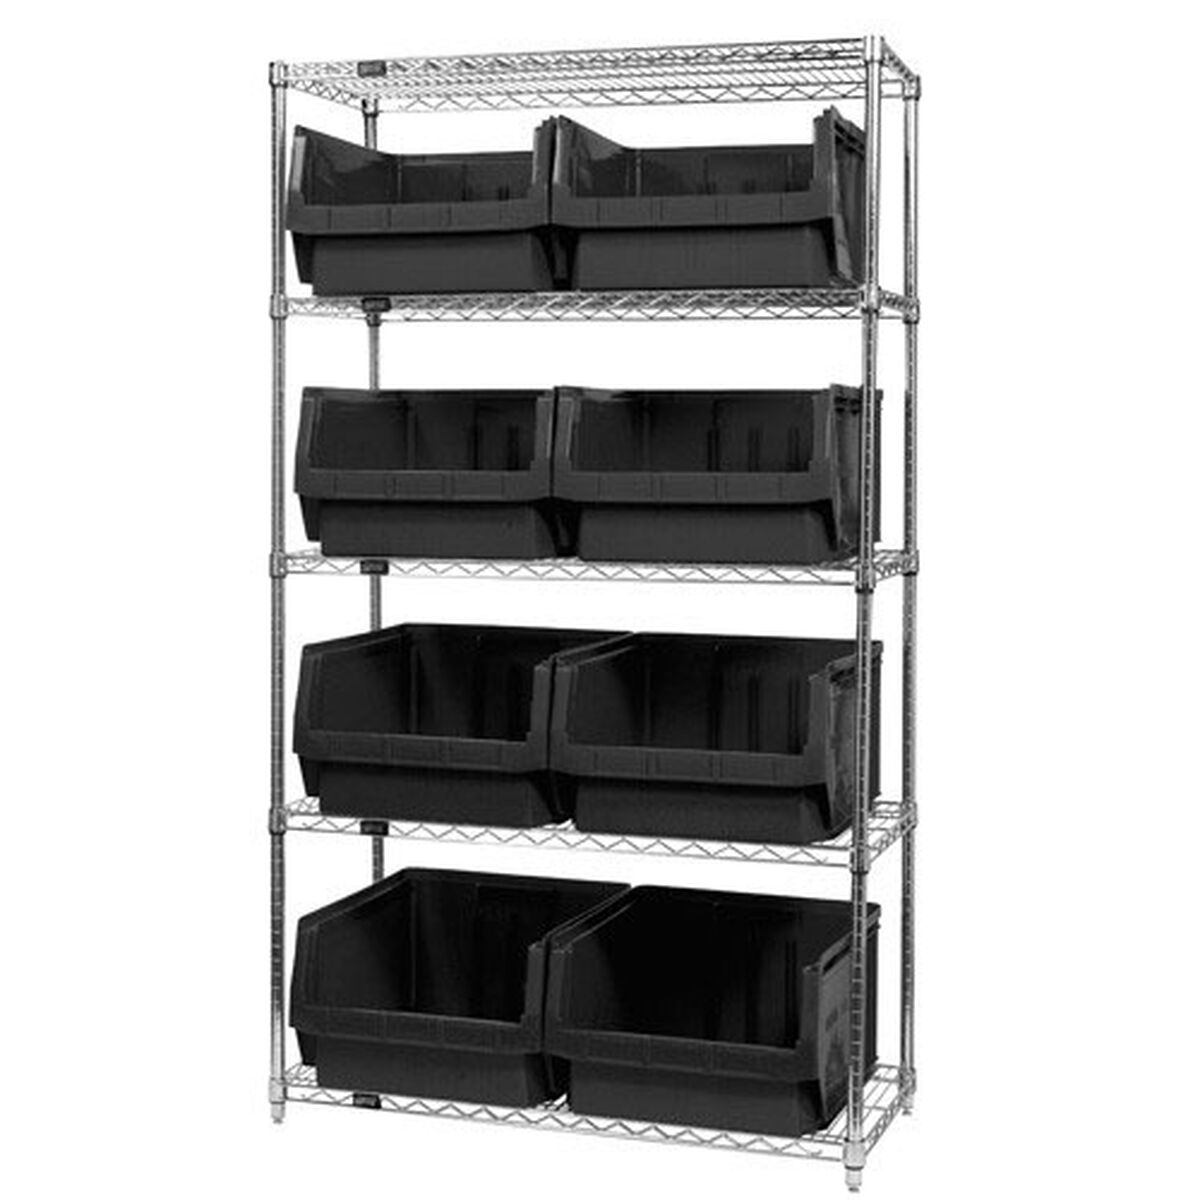 Wire Shelving Unit with Bins WR5-543-BK | Bizchair.com